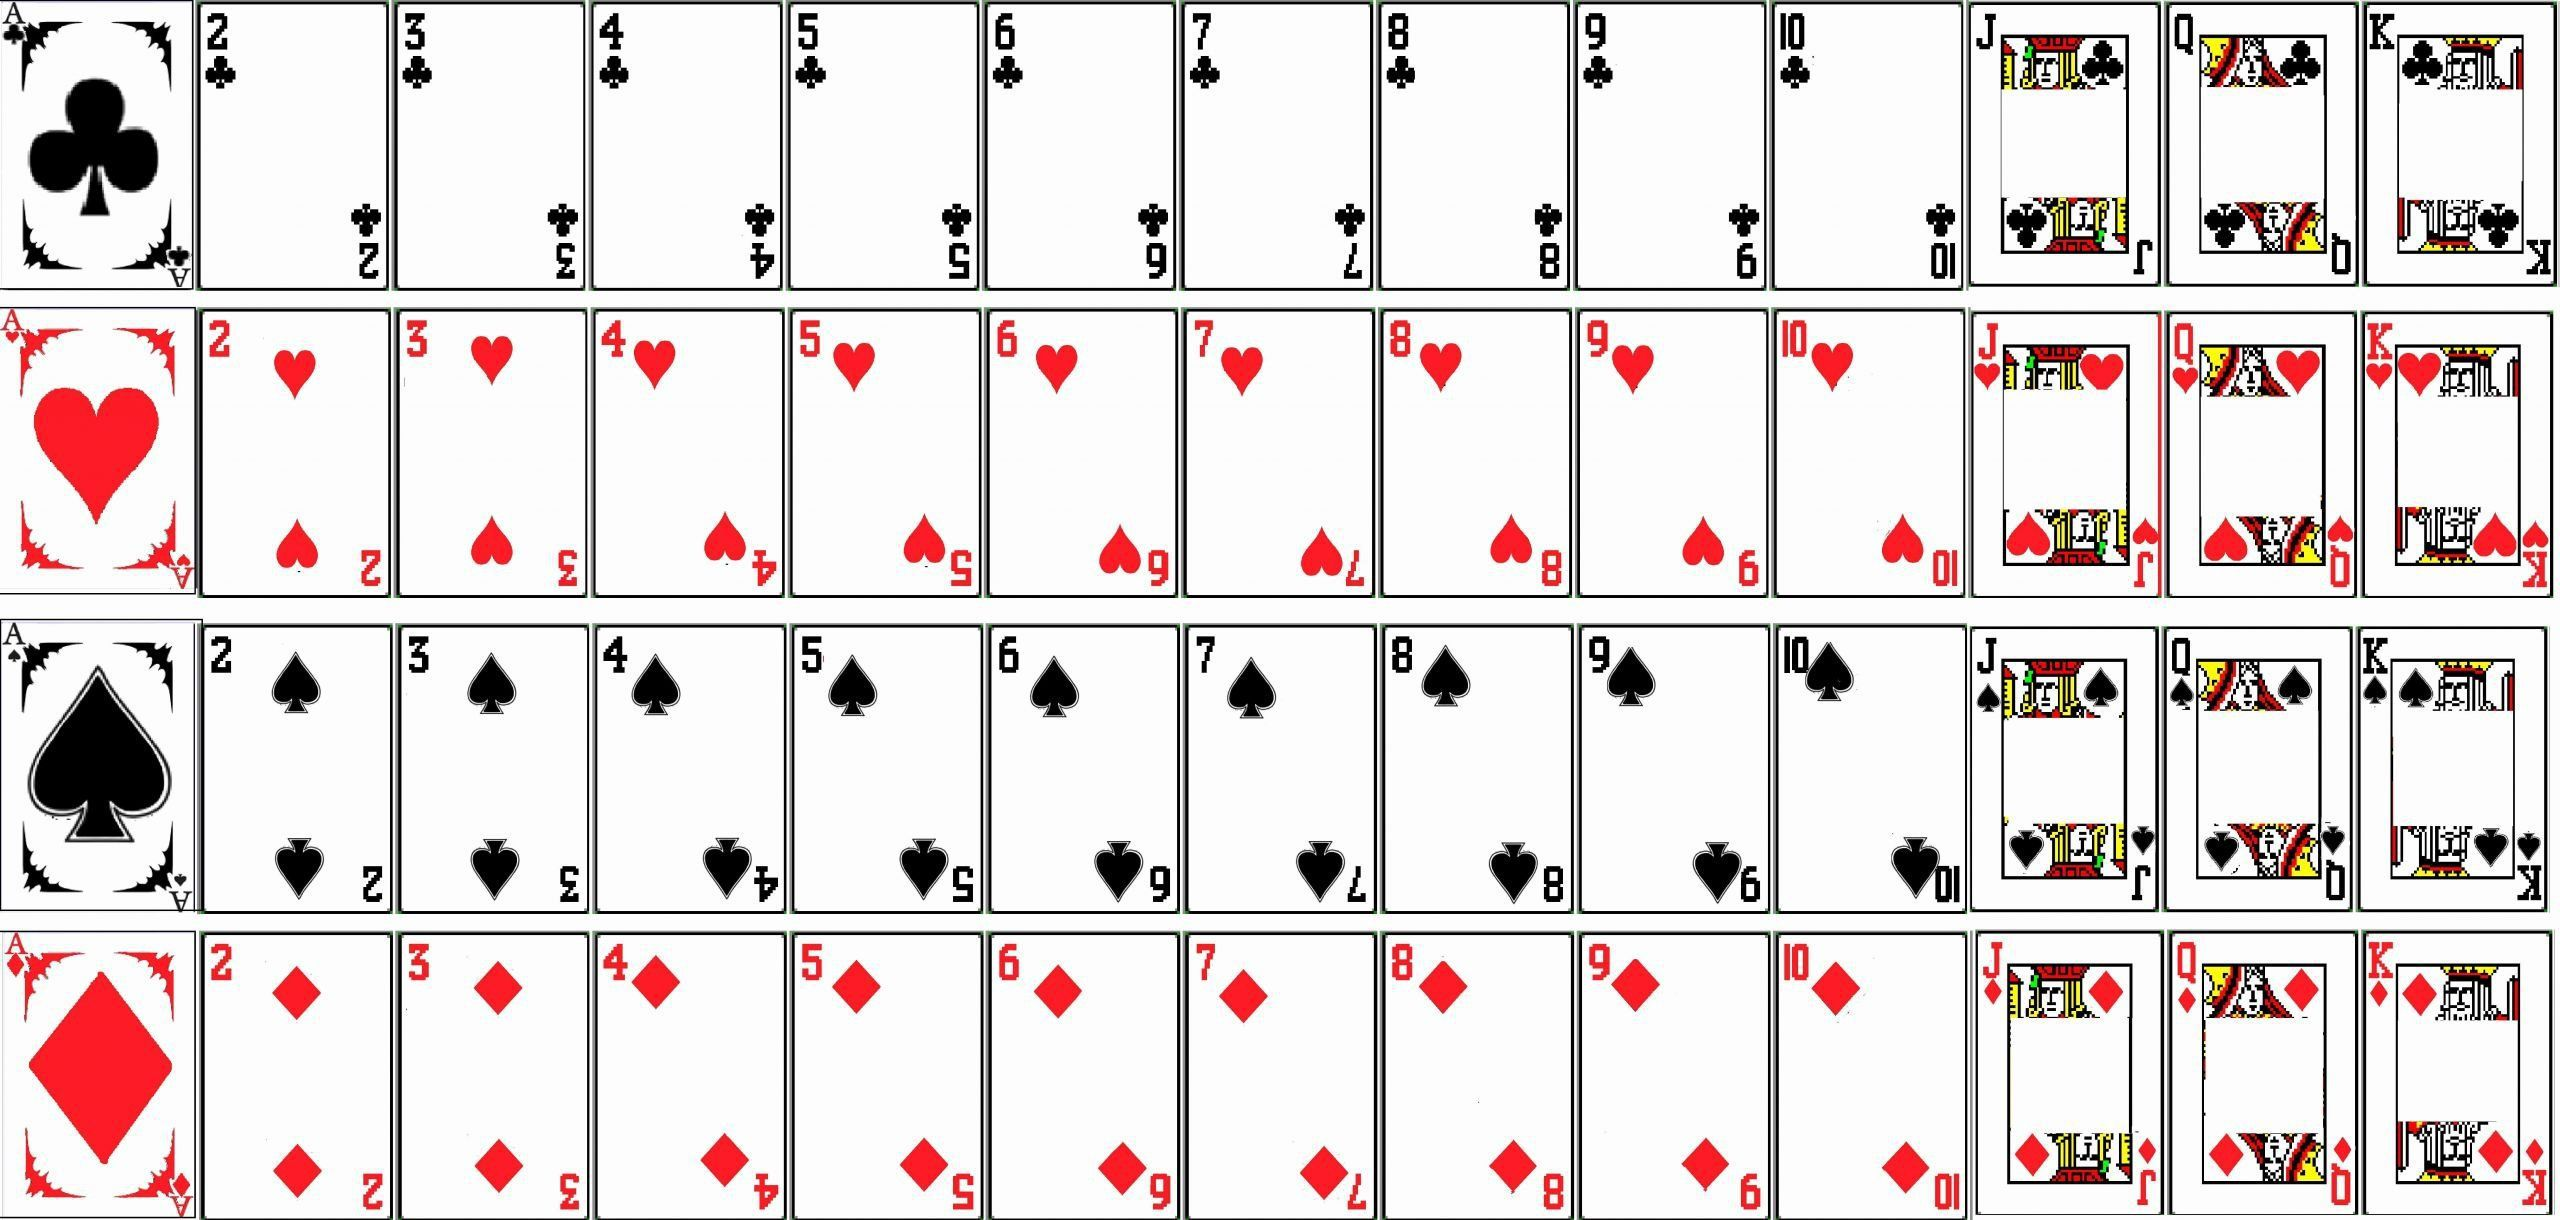 002 Sensational Blank Playing Card Template Word Inspiration Full